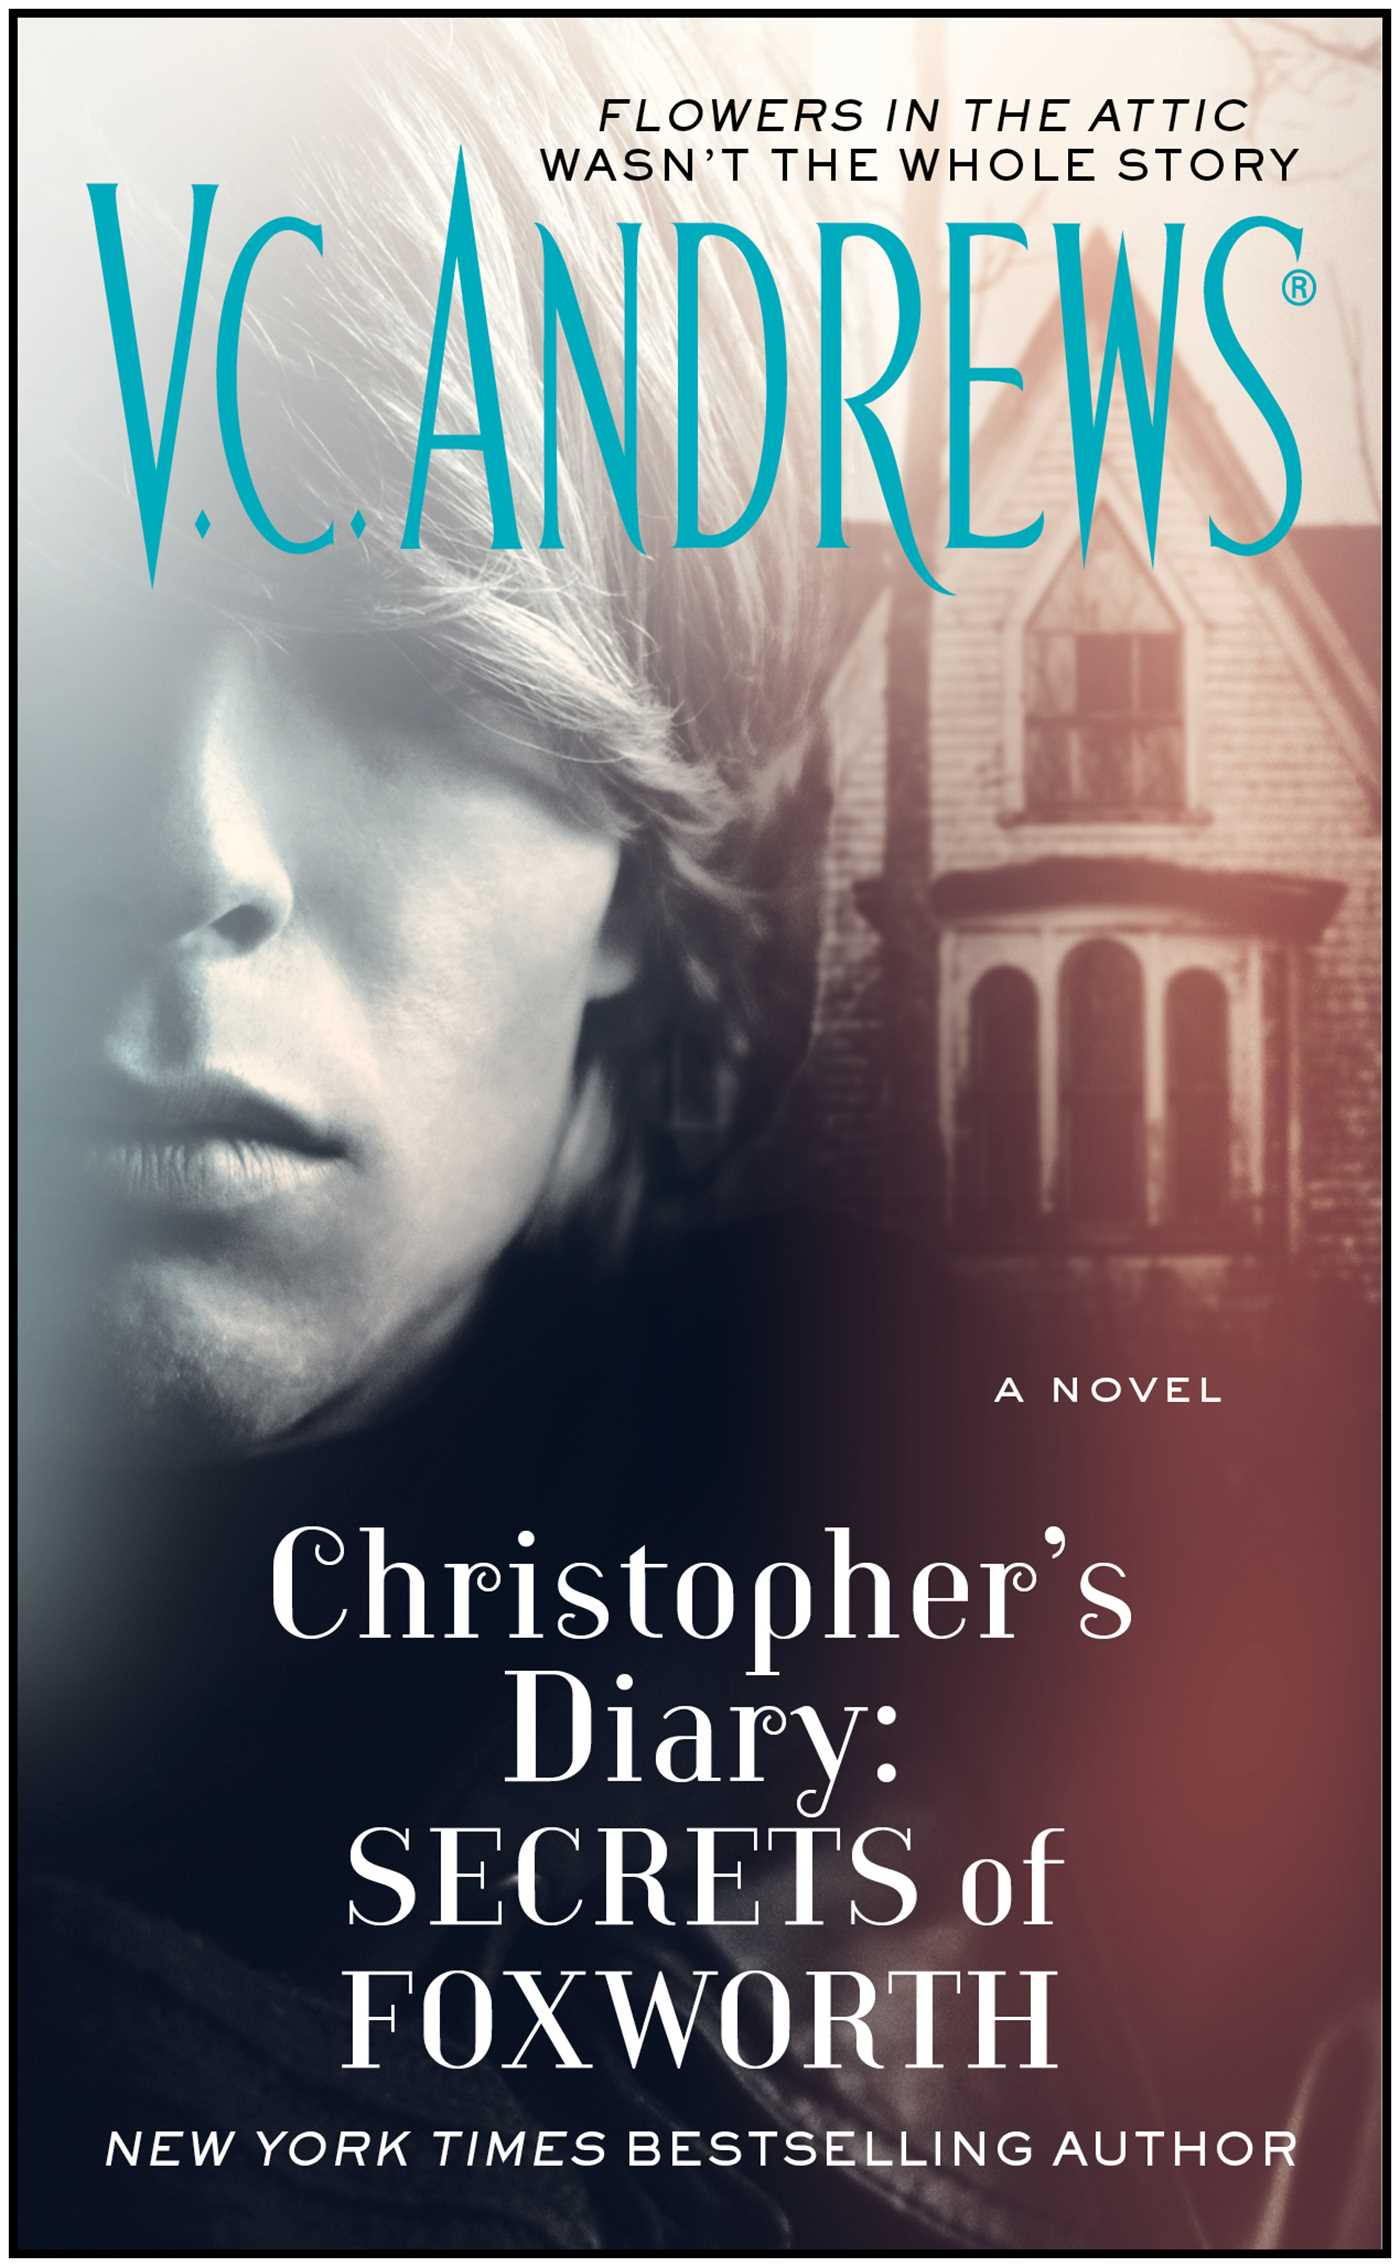 Christophers-diary-secrets-of-foxworth-9781476790619_hr